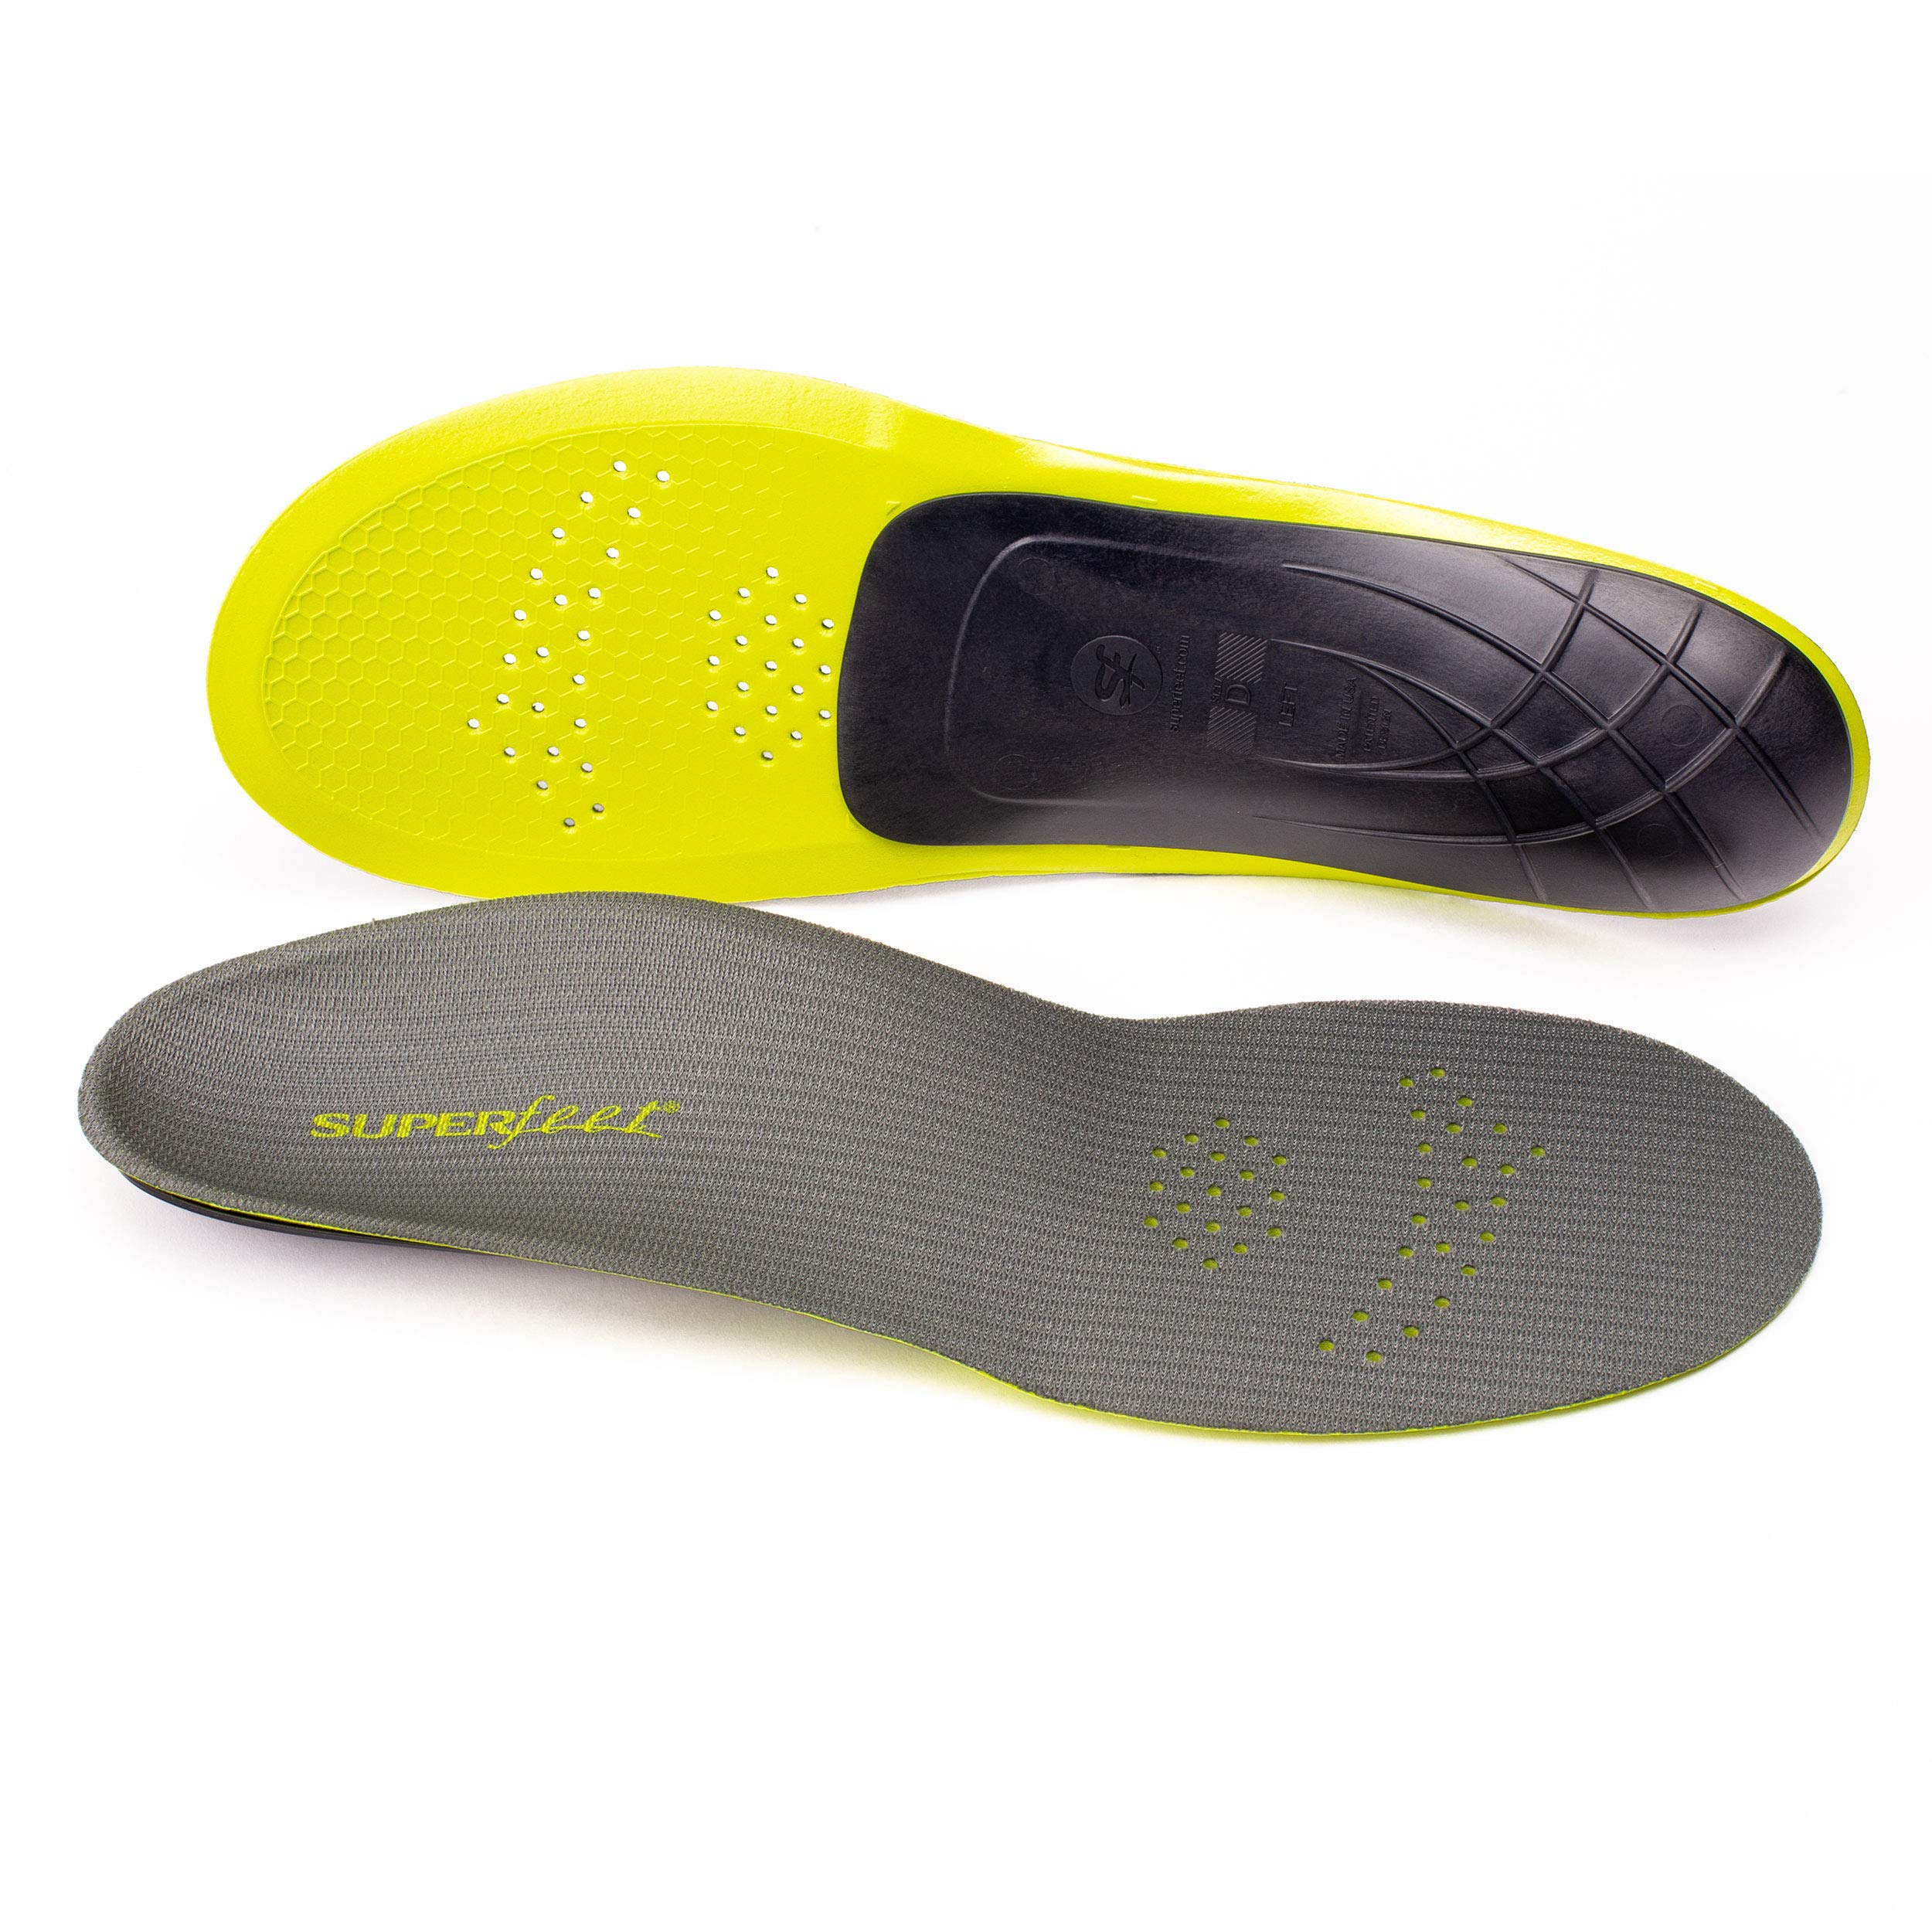 Superfeet Carbon, Thin and Strong Insoles for Pain Relief in Performance Athletic and Tight Casual Shoes, Unisex, Gray, X-Small/B: 4.5-6 WMNS/2.5-4 Juniors